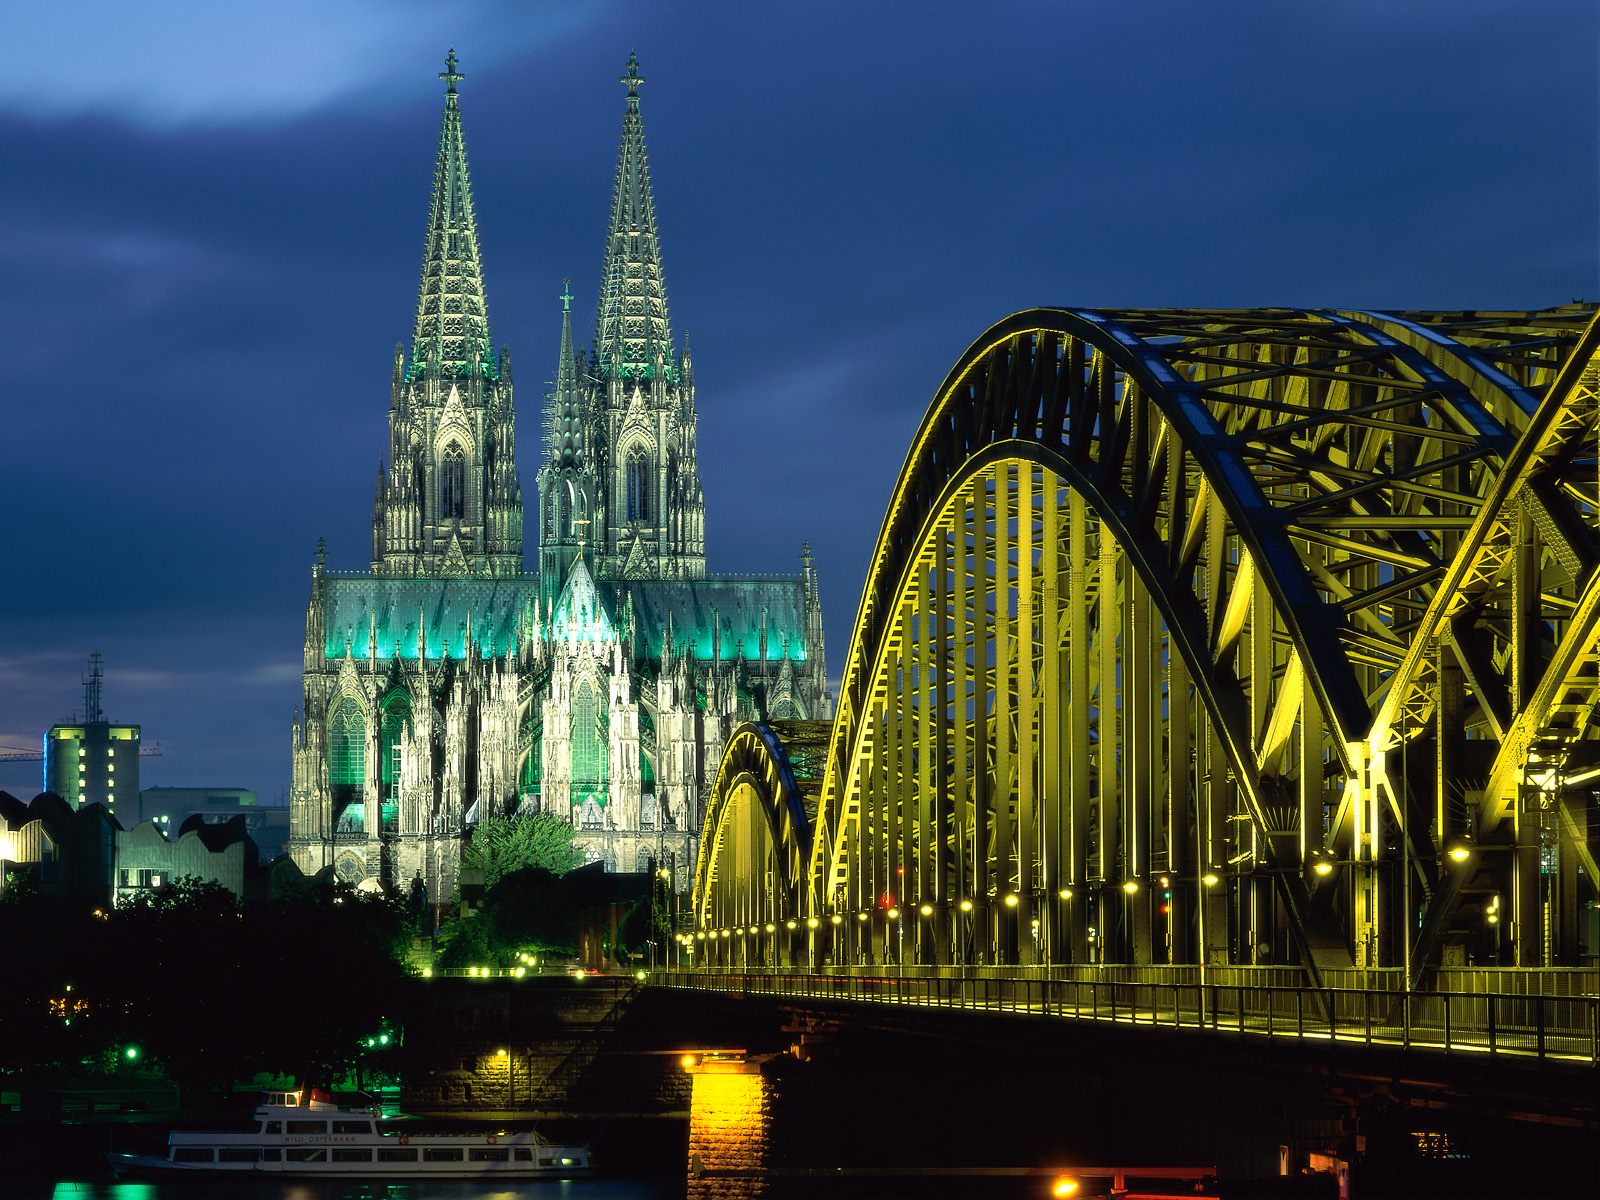 Cologne Cathedral and Hohenzollern Bridge Cologne 1600 x 1200